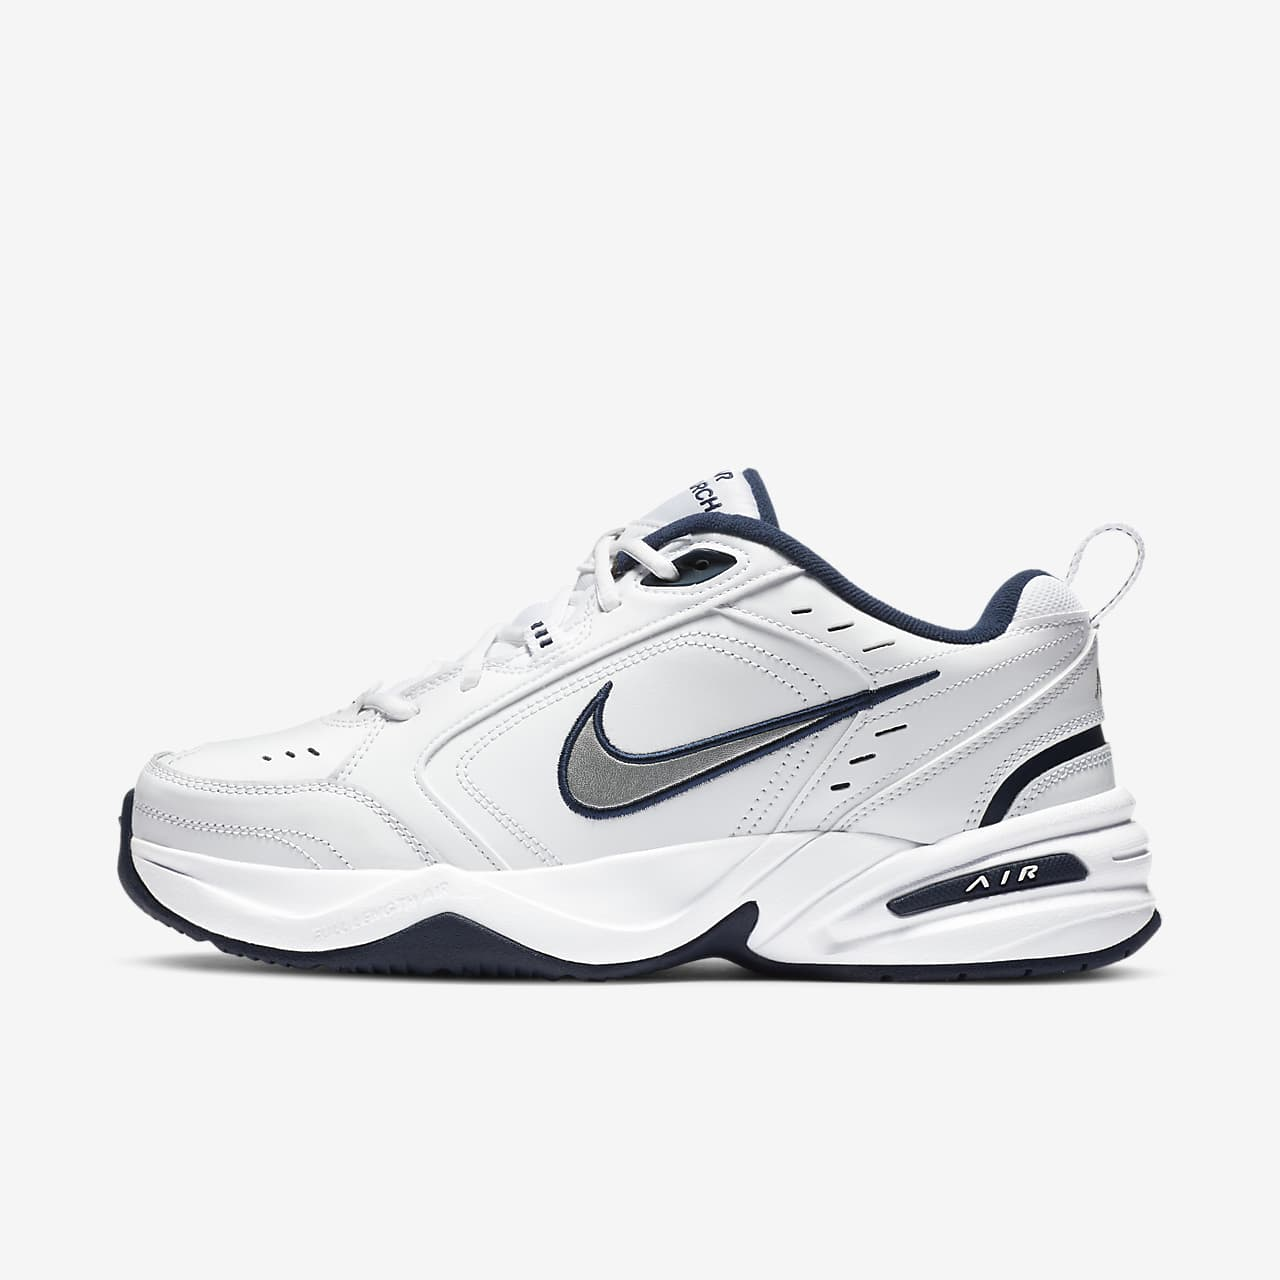 timeless design 05aa5 41ea7 ... Nike Air Monarch IV Schuh für Lifestyle Fitnessstudio